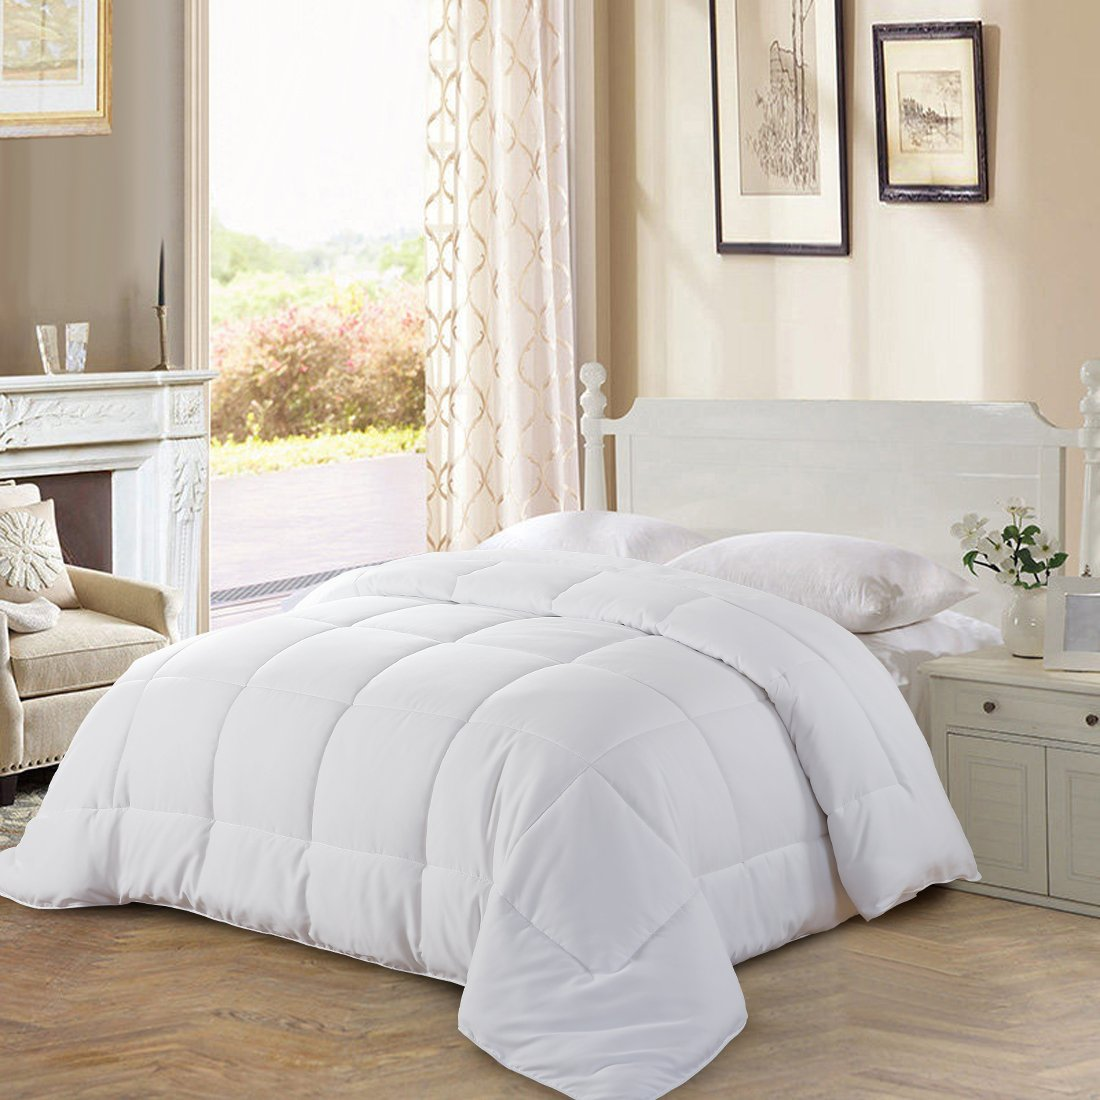 All Season Twin Goose Down Alternative Quilted Comforter with Corner Tabs - Hypoallergenic -Double Plush Fabric -Super Microfiber Fill -Machine Washable - Duvet Insert & Stand-Alone Comforter - White Balichun